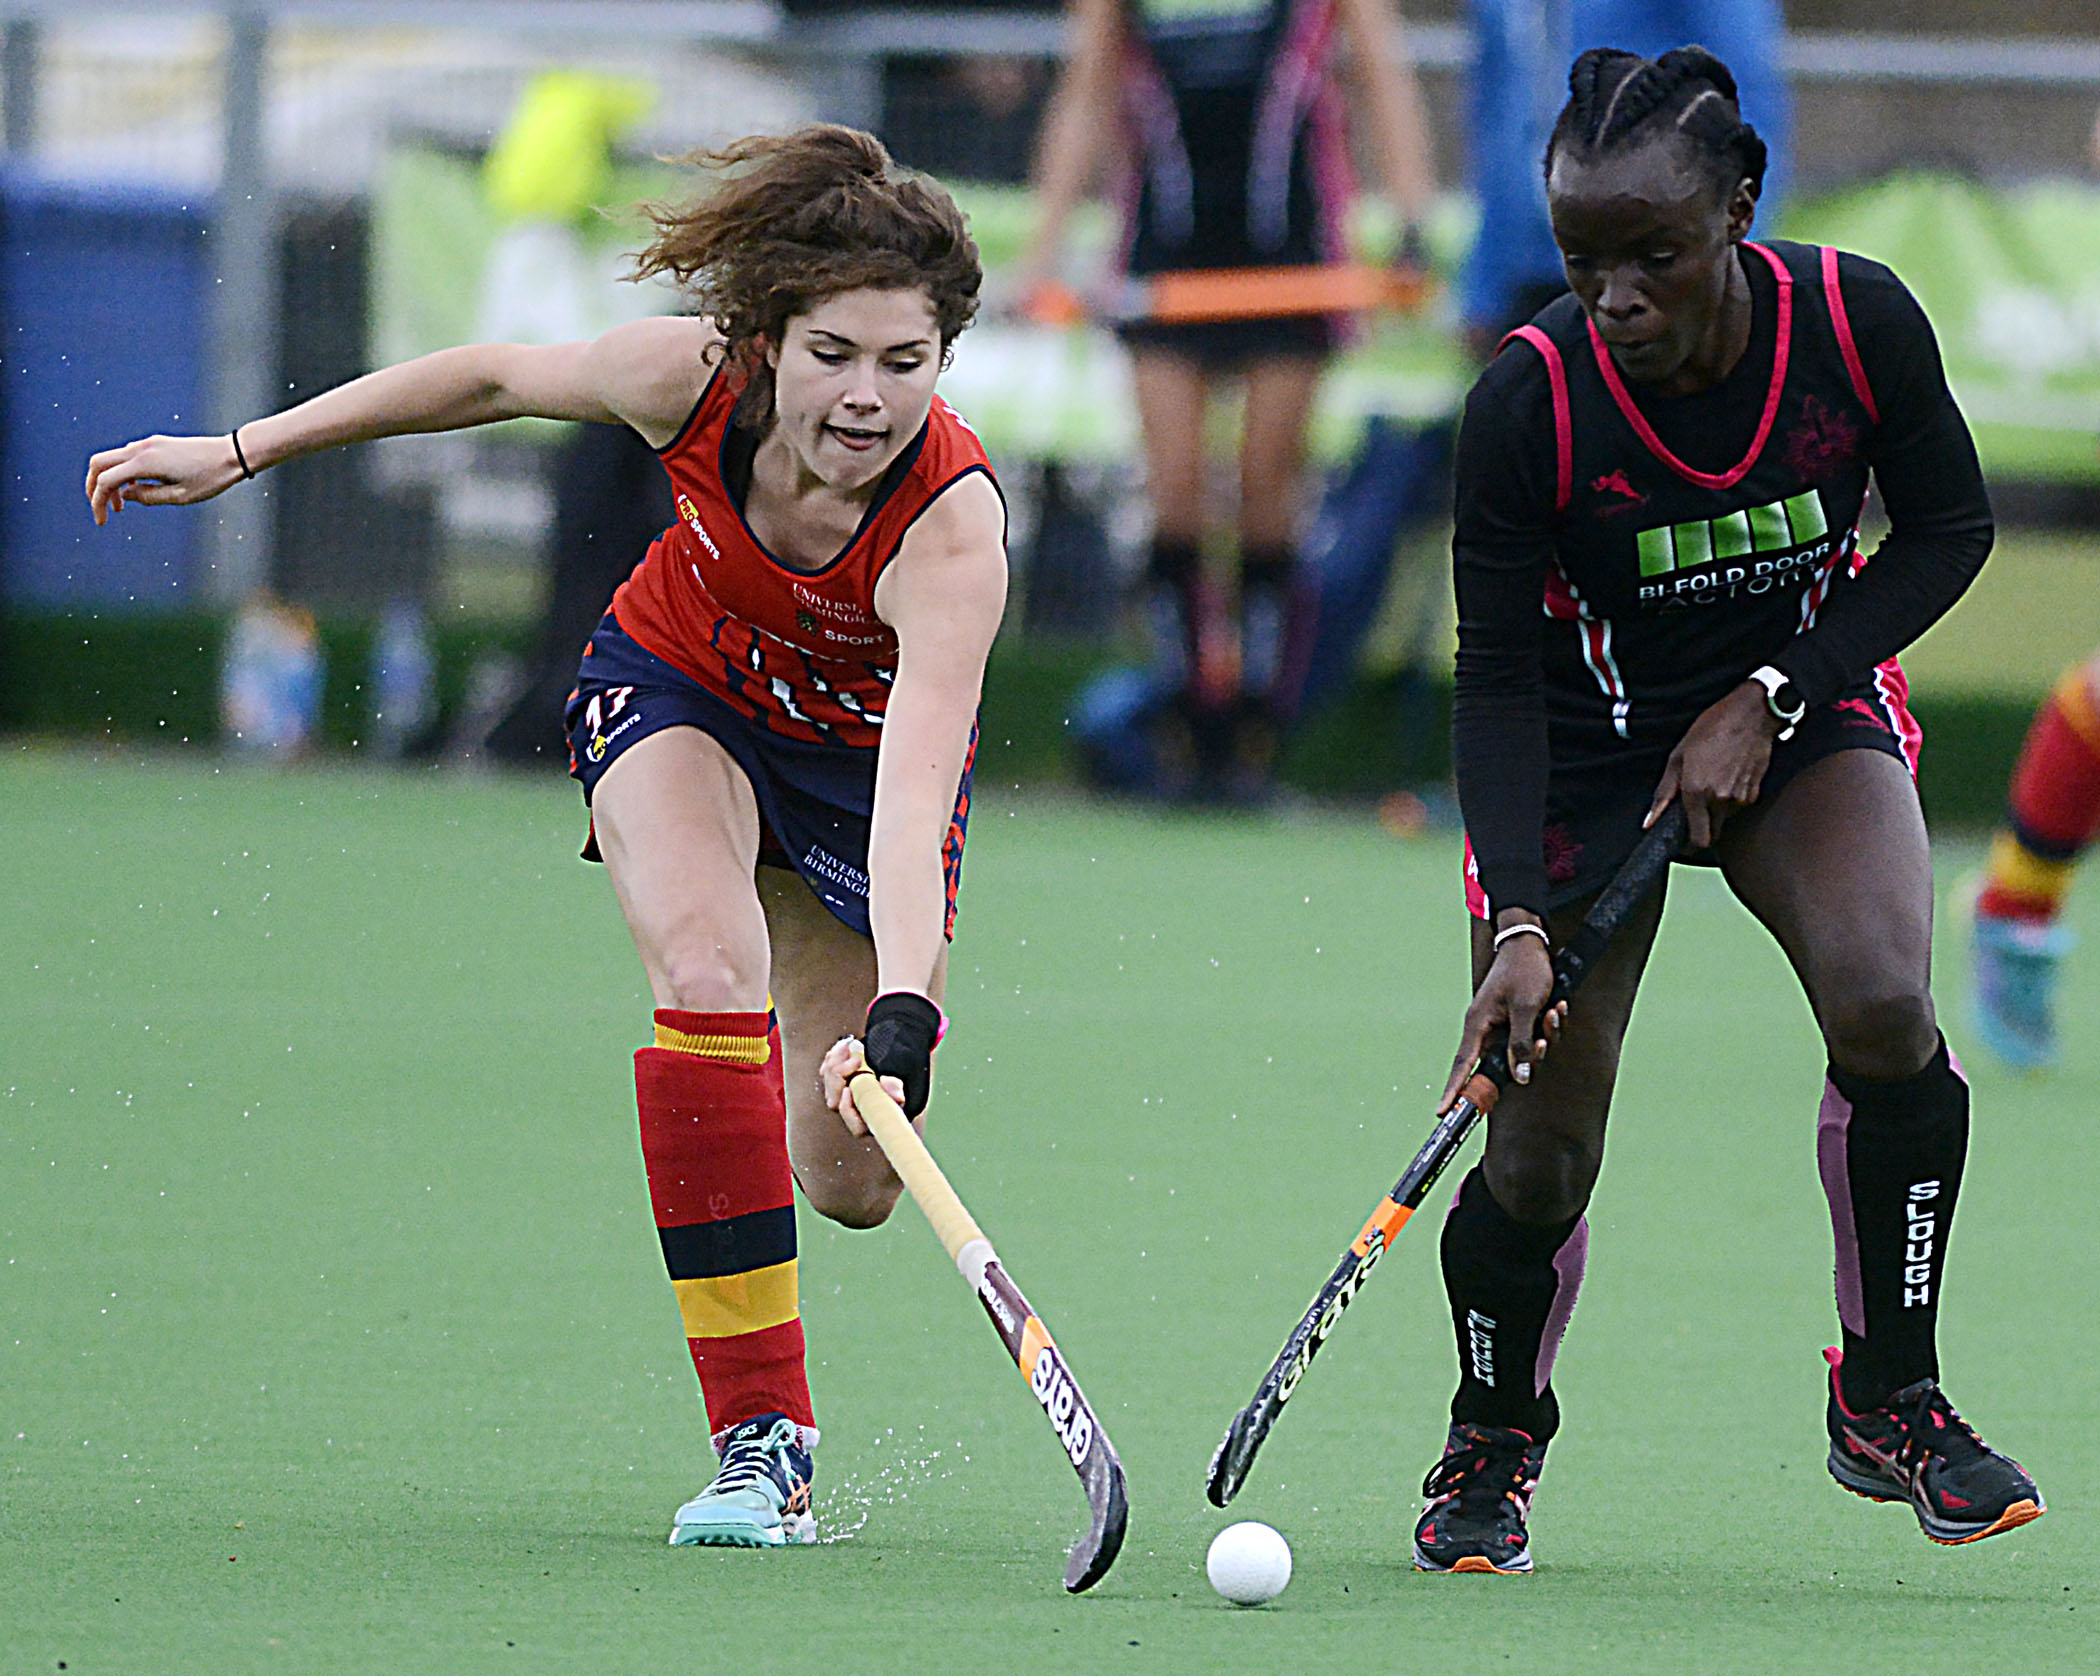 Slough (pink and black) suffered a 1-0 defeat to University of Birmingham on Saturday.